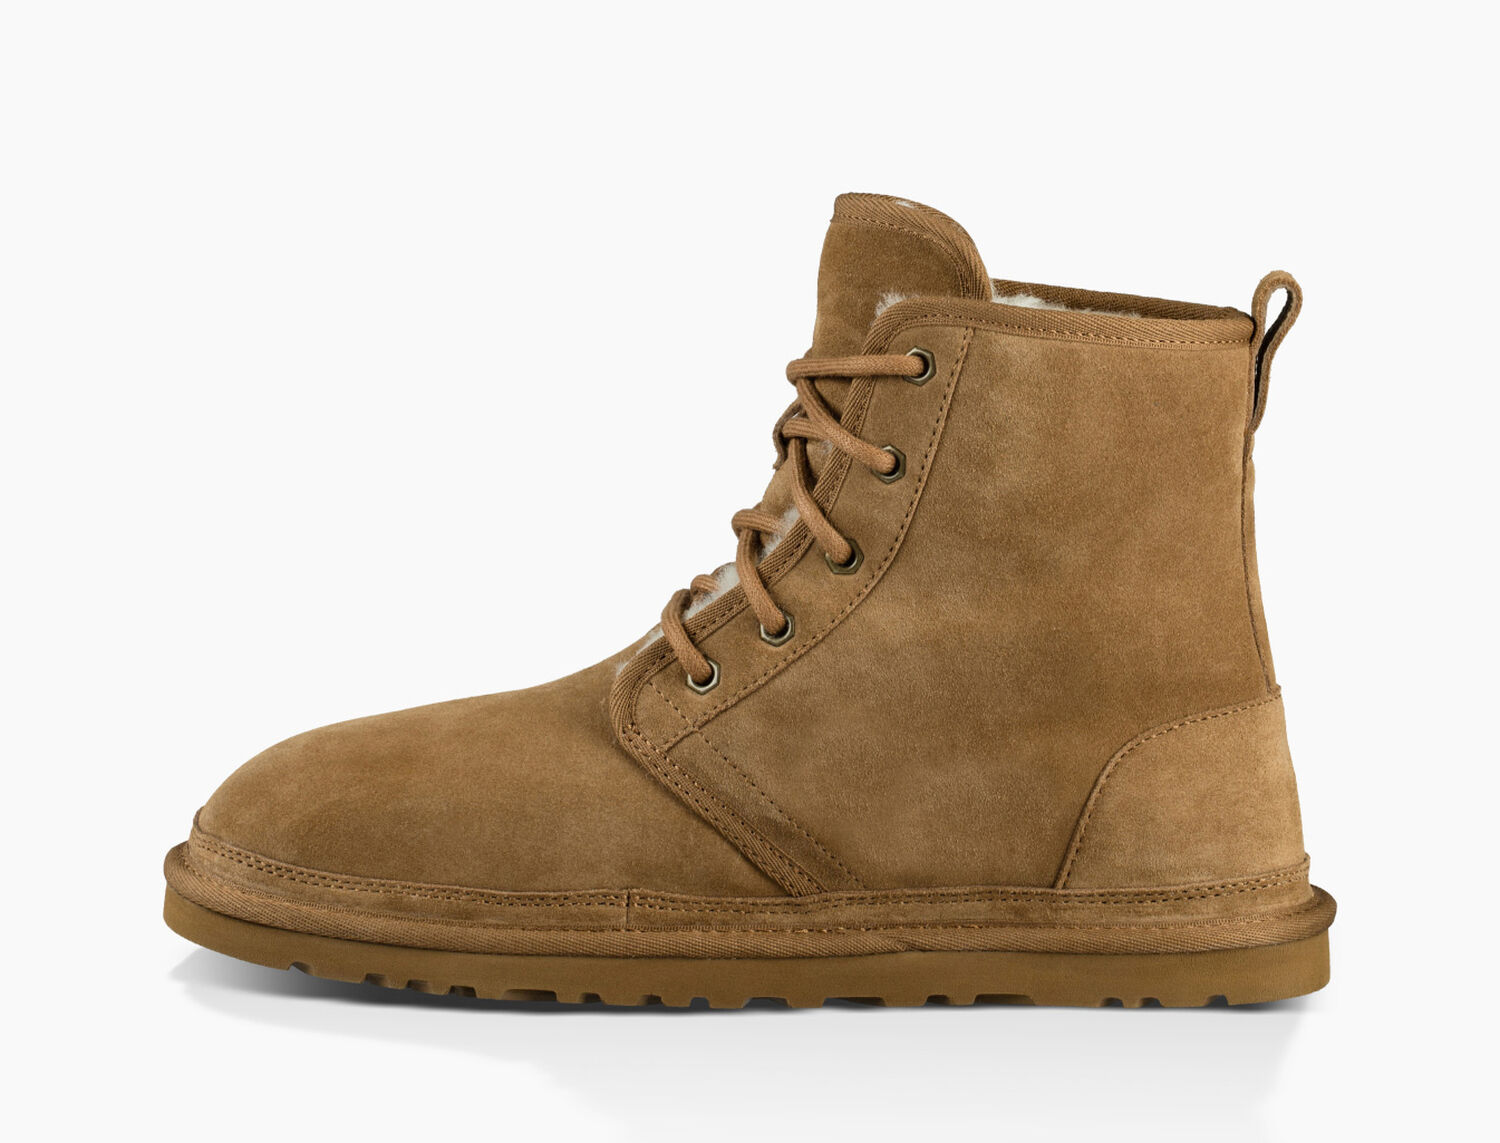 0307ae138a7 Men's Share this product Harkley Boot